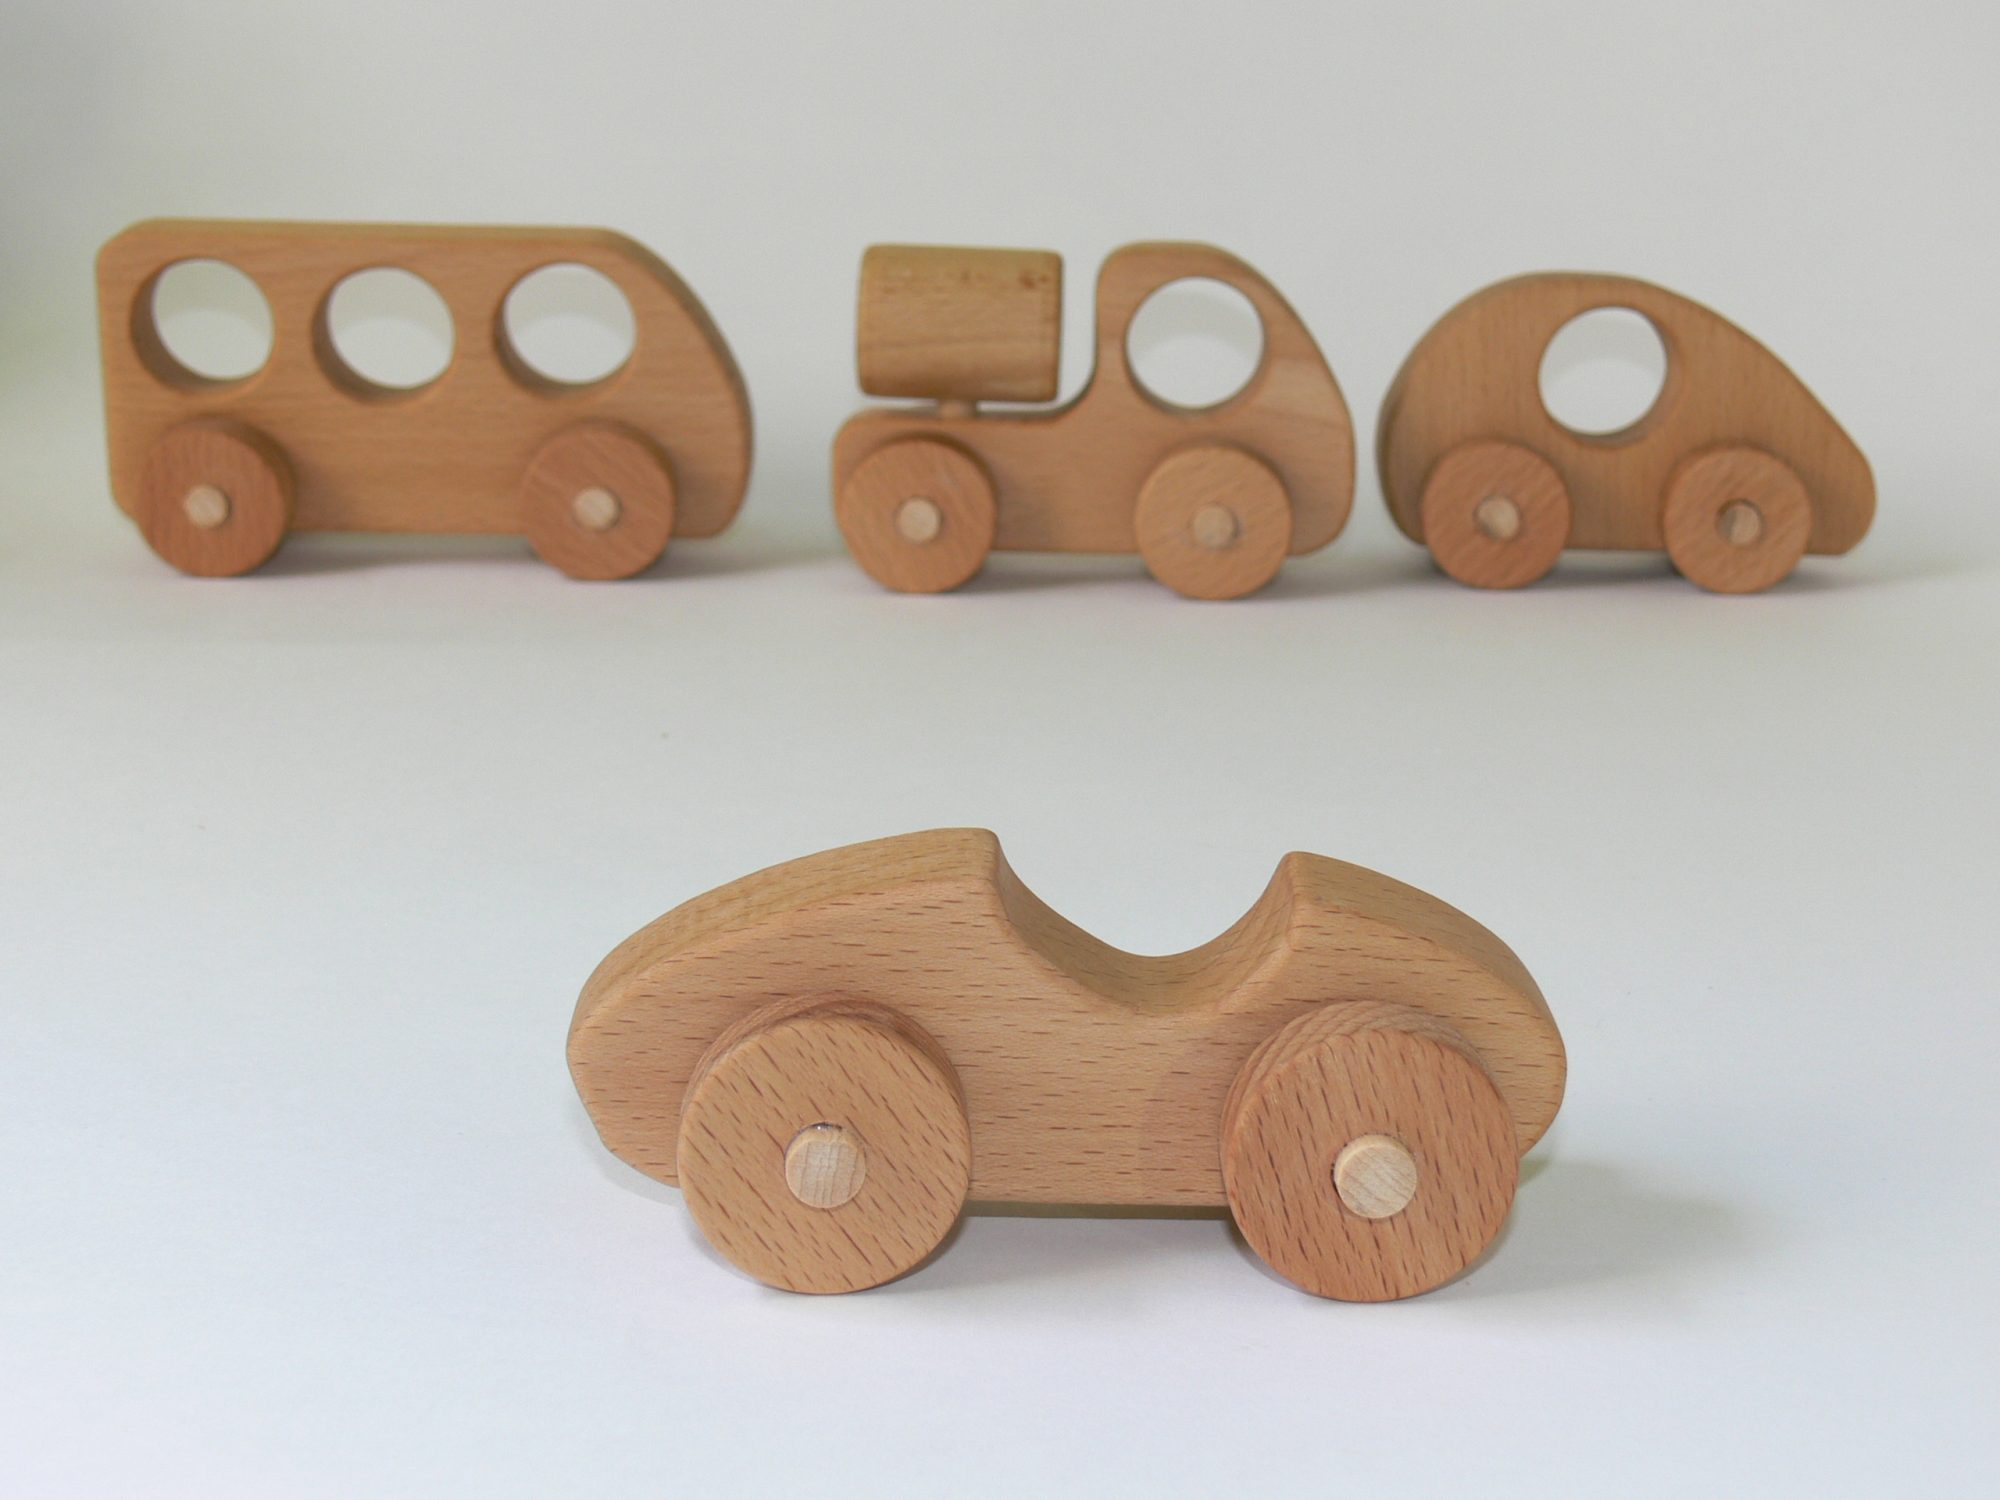 Push Racing Car Wooden Toy